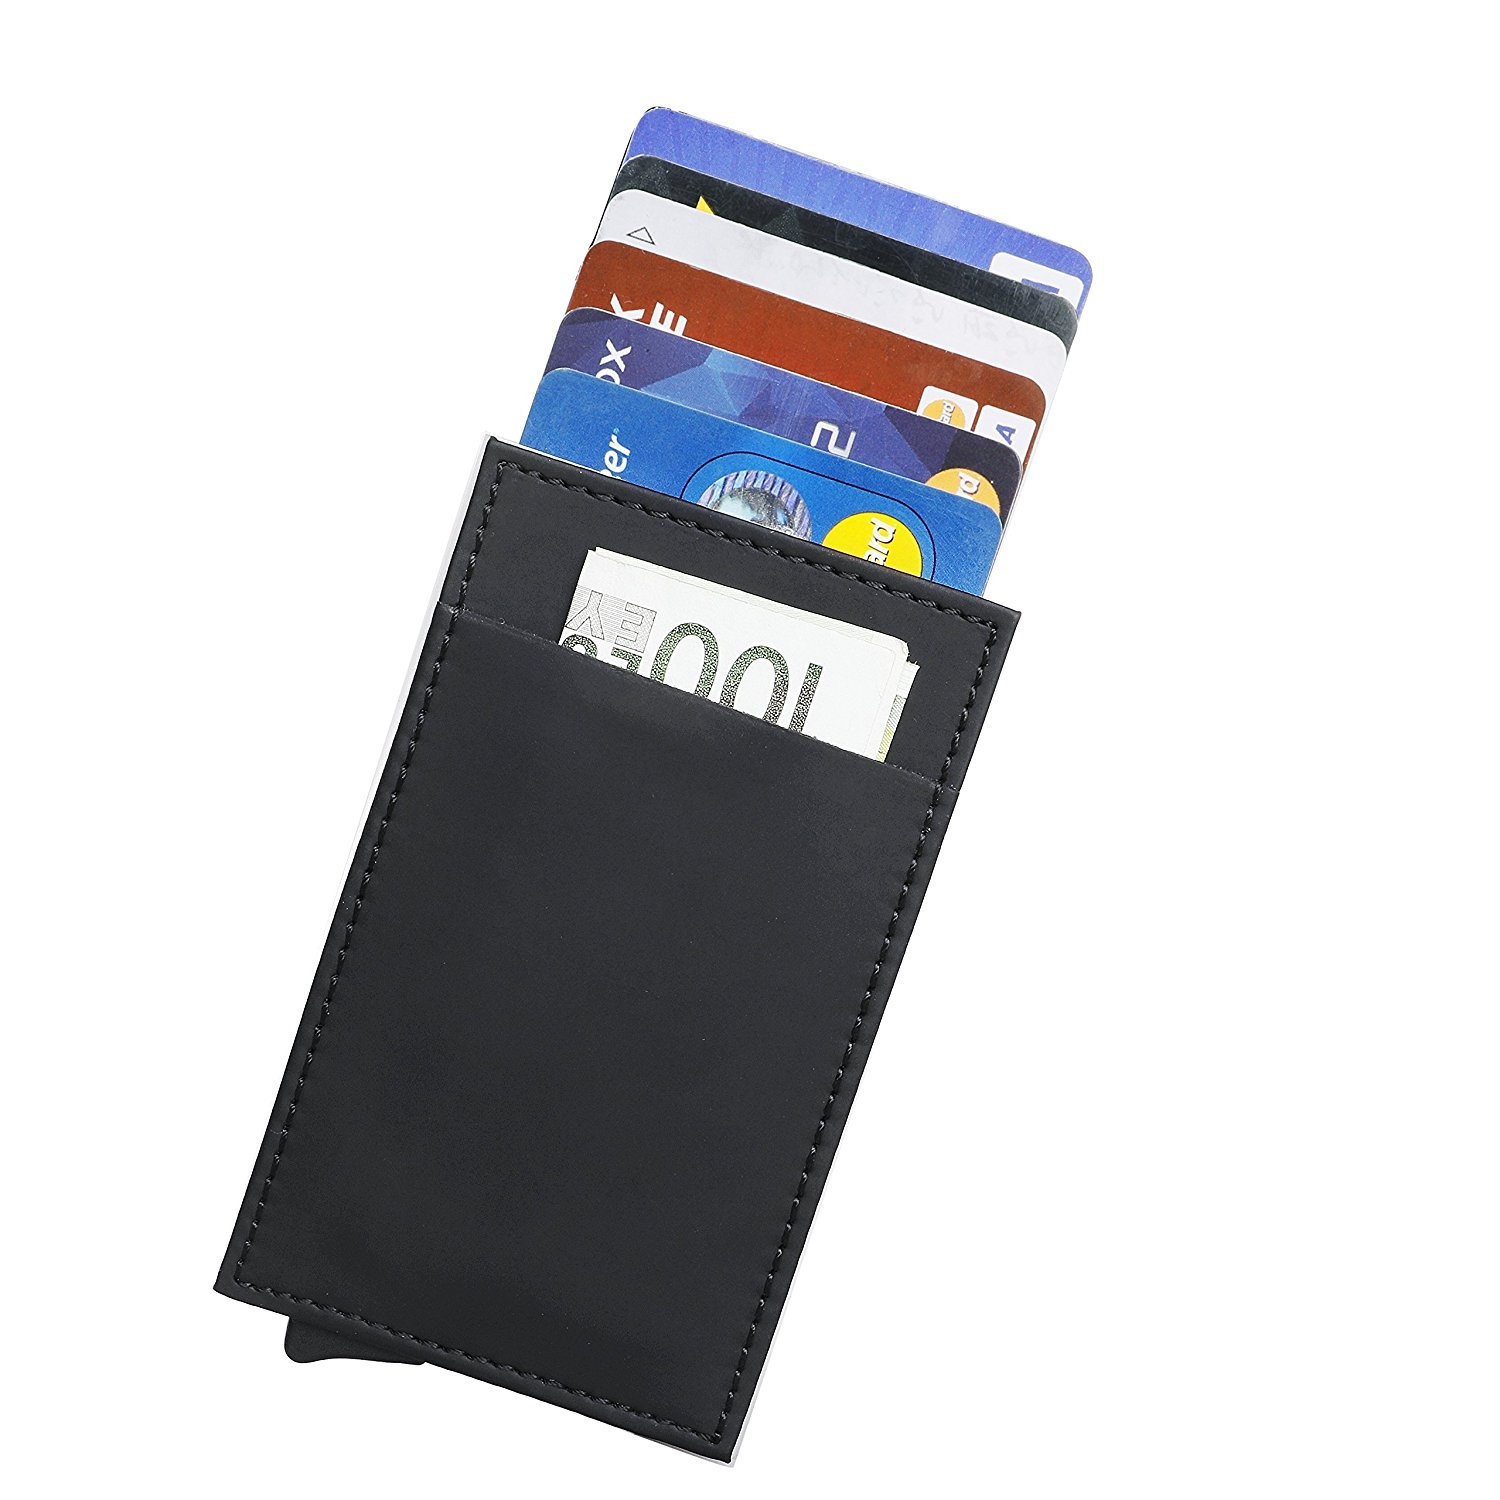 Credit cards wallet cashnox rfid blocking business credit card credit cards wallet cashnox rfid blocking business credit card holder aluminium automatic pop up card case silverwith money slot t by cashnox shop reheart Choice Image